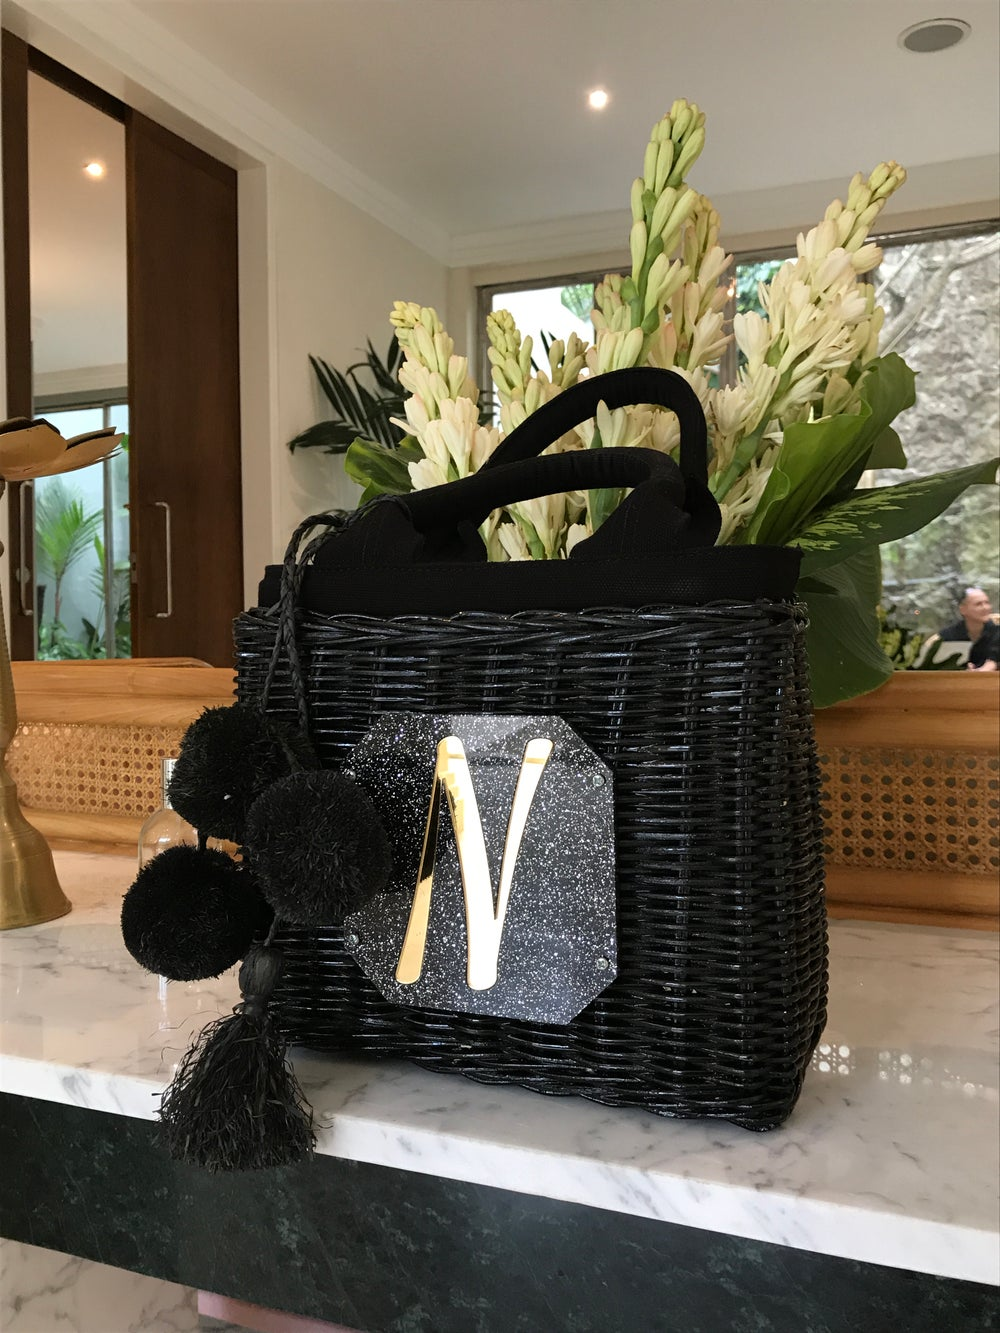 Image of The Wicker Bag